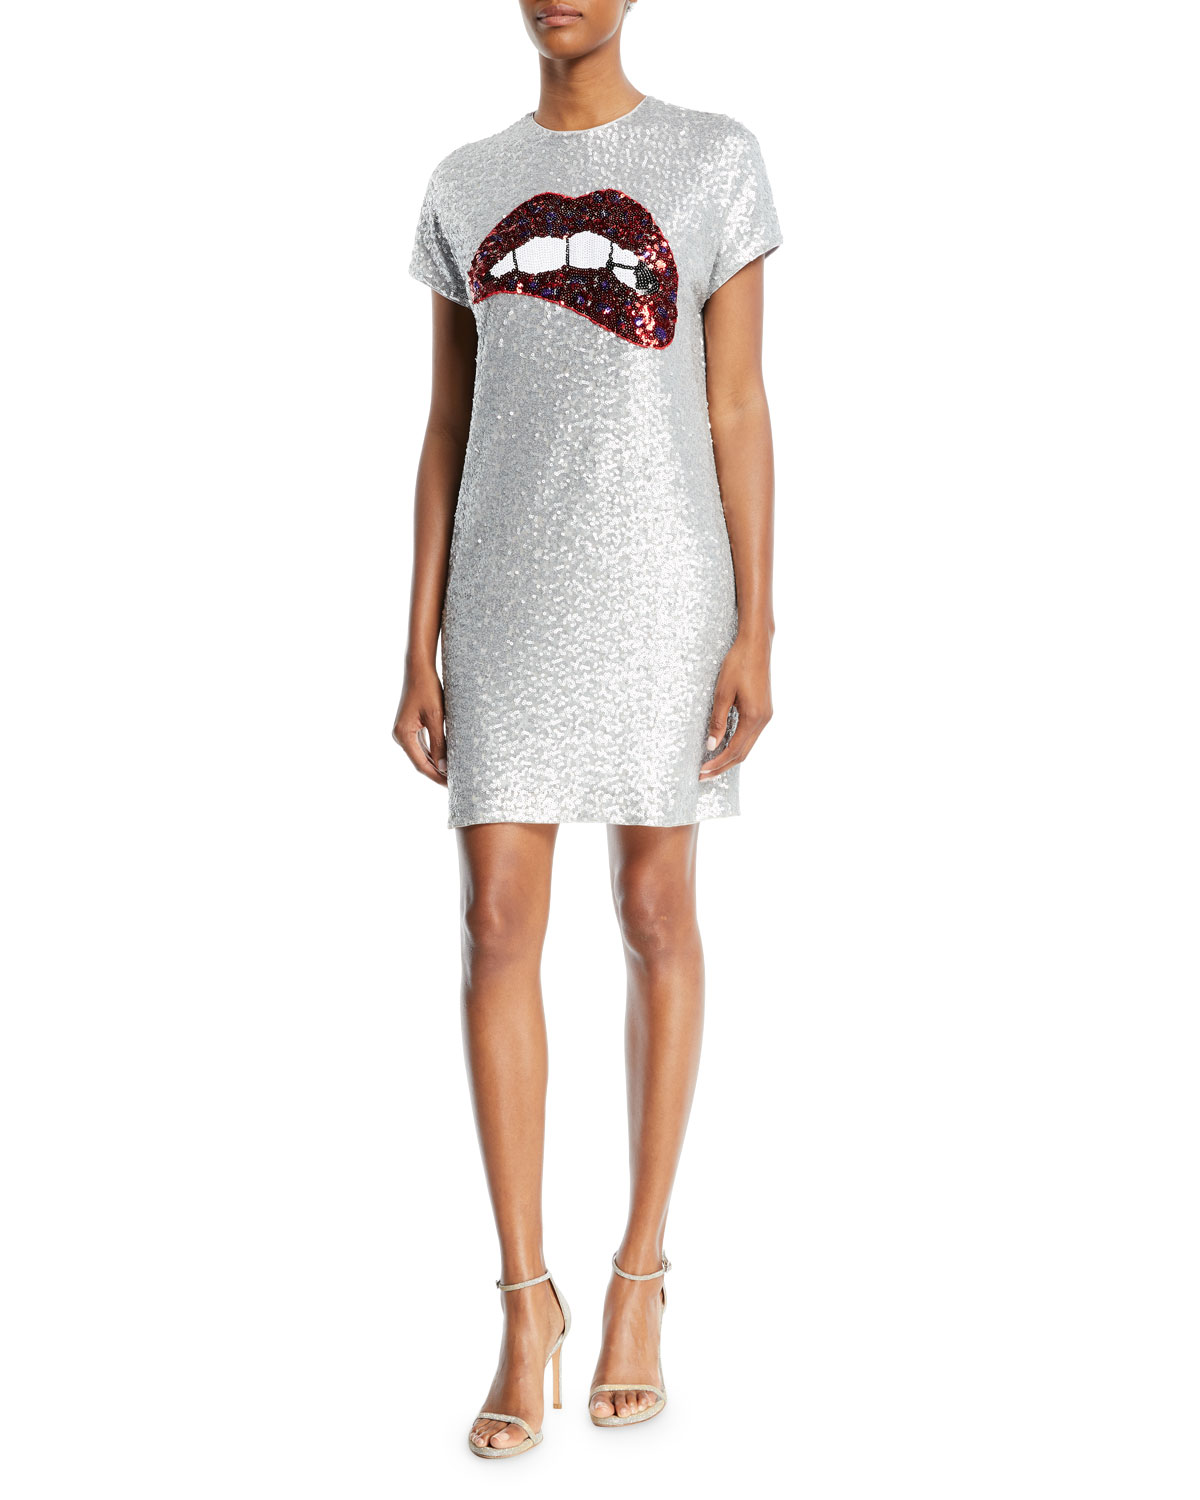 bd394bdb5a9 Aidan by Aidan Mattox Sequin Short-Sleeve Biting Lips Cocktail Dress ...